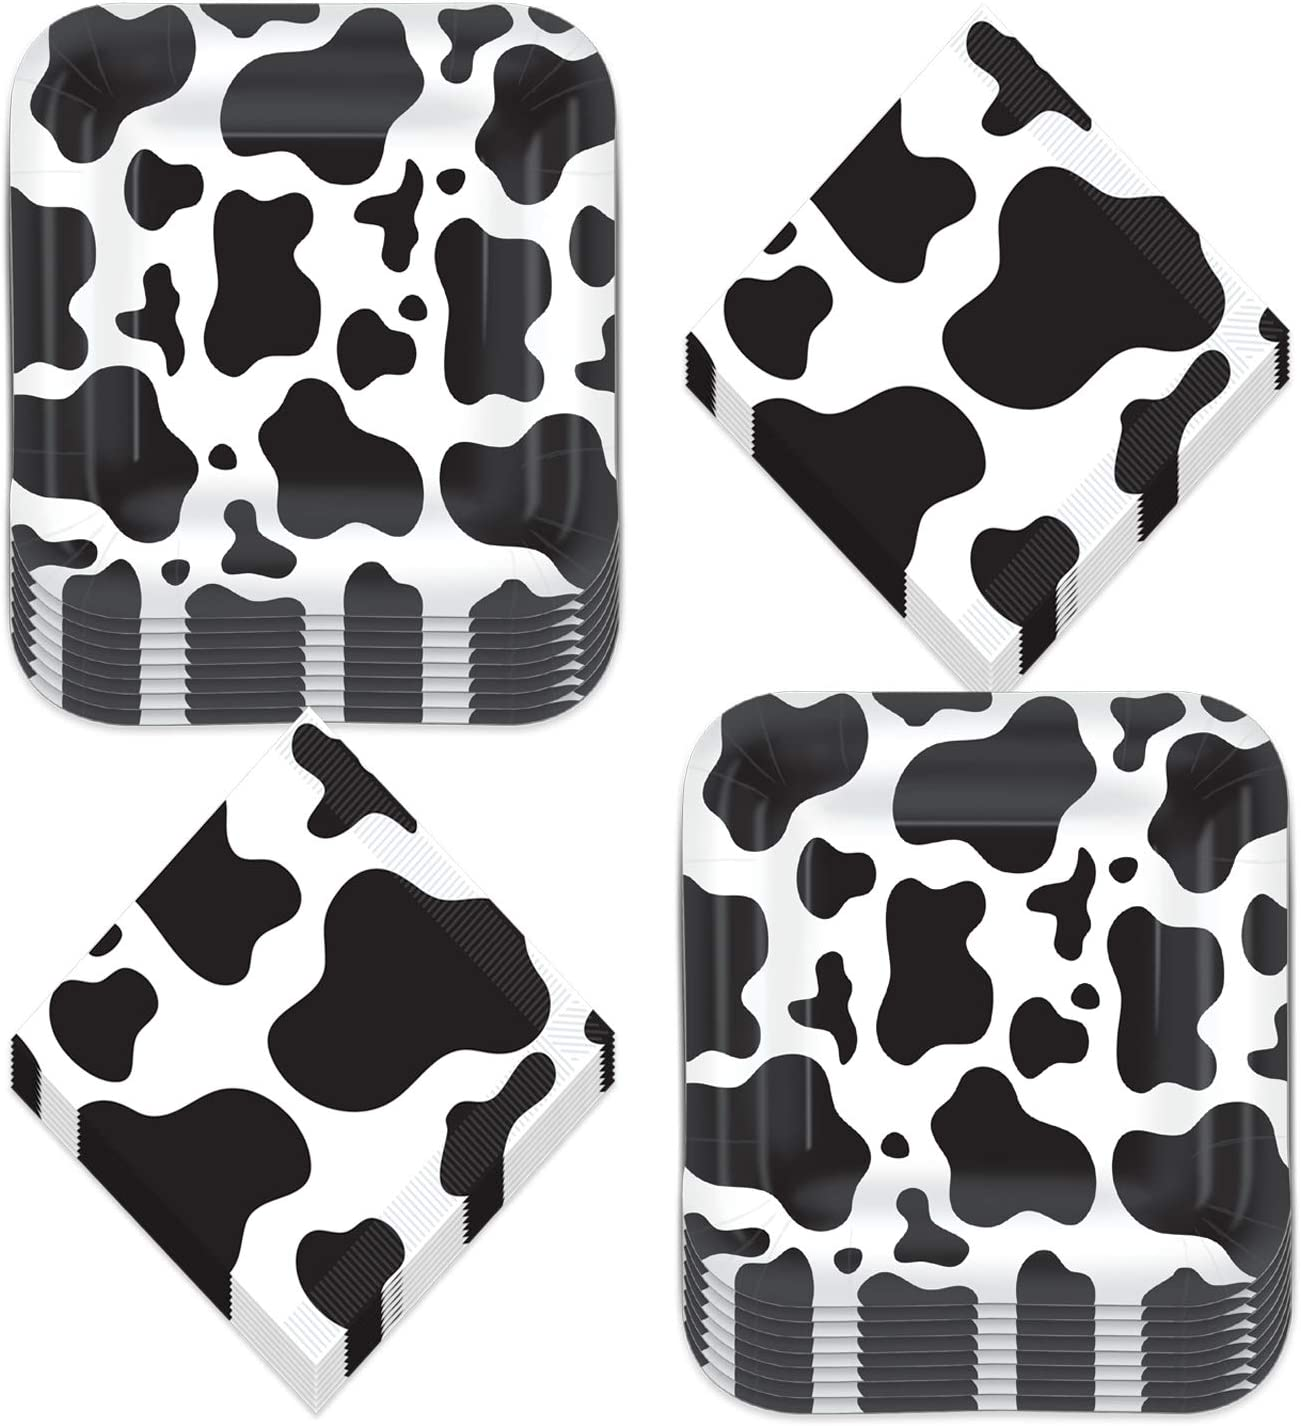 Cow Print Party Supplies - Black and White Cow Print Paper Dinner Plates and Lunch Napkins for Western and Farm Animal Theme Parties (Serves 16)